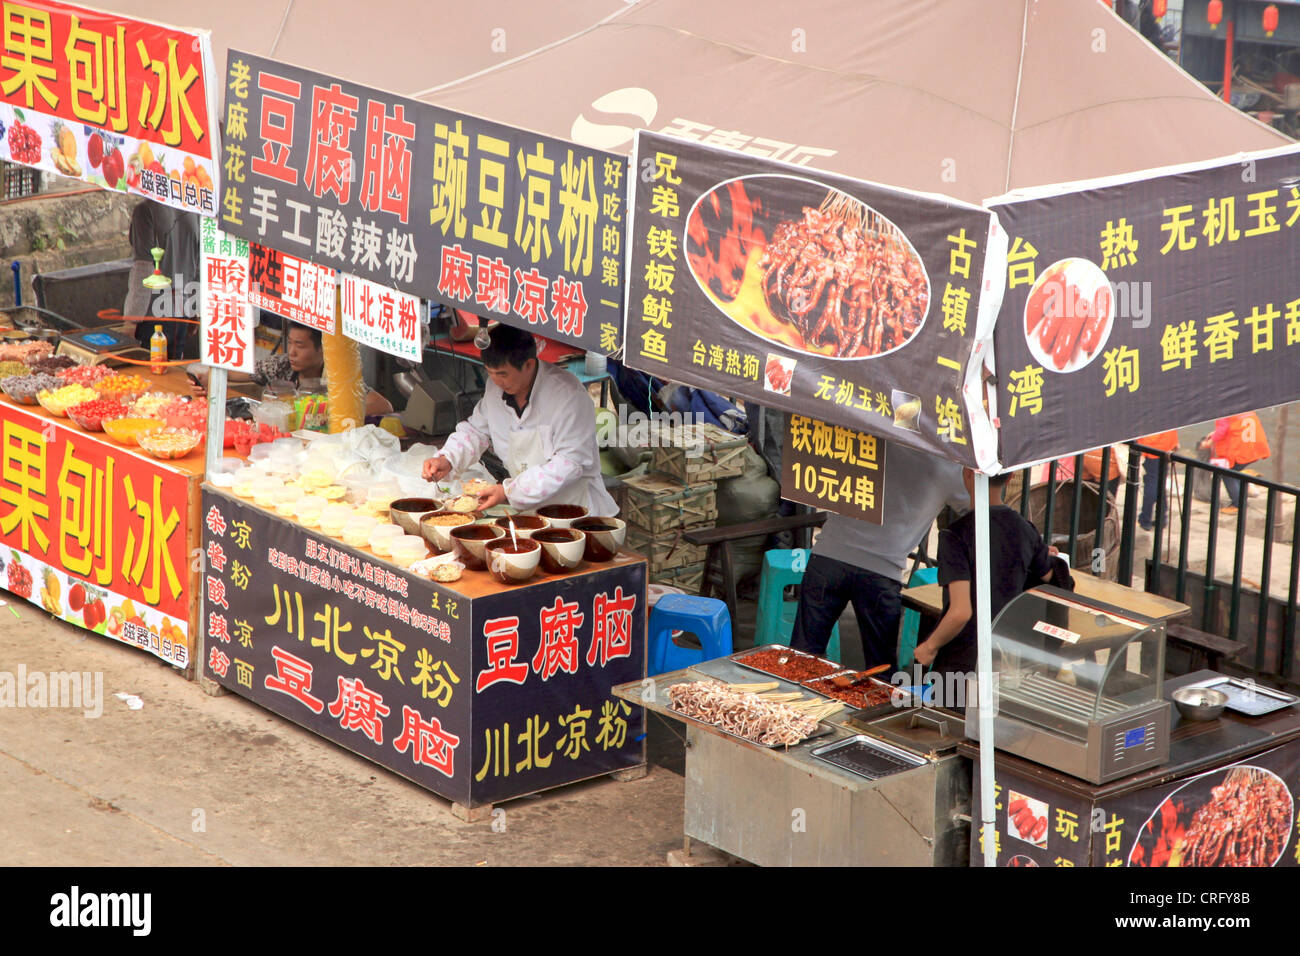 Chinese Food Stall High Resolution Stock Photography And Images Alamy